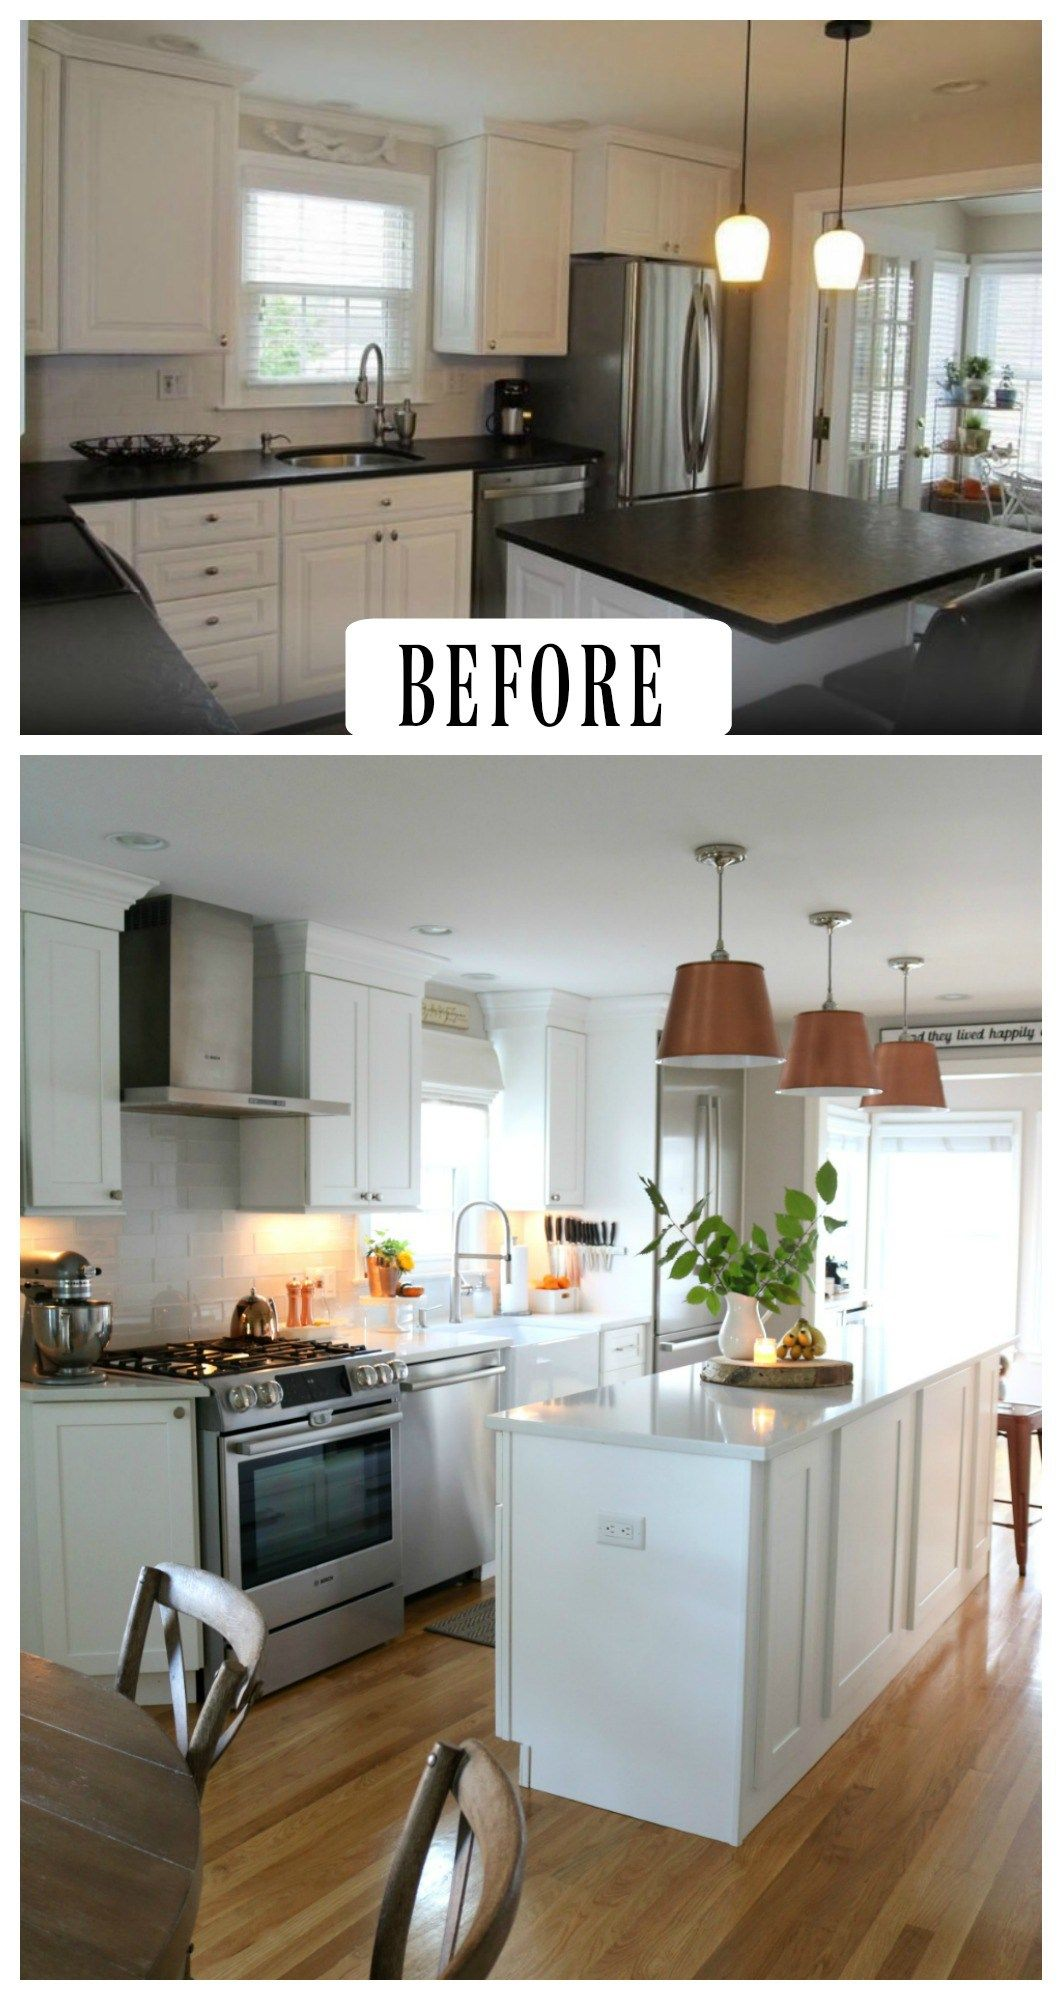 27 inspiring kitchen makeovers before and after kitchen makeover kitchen inspirations home on kitchen makeover ideas id=14667